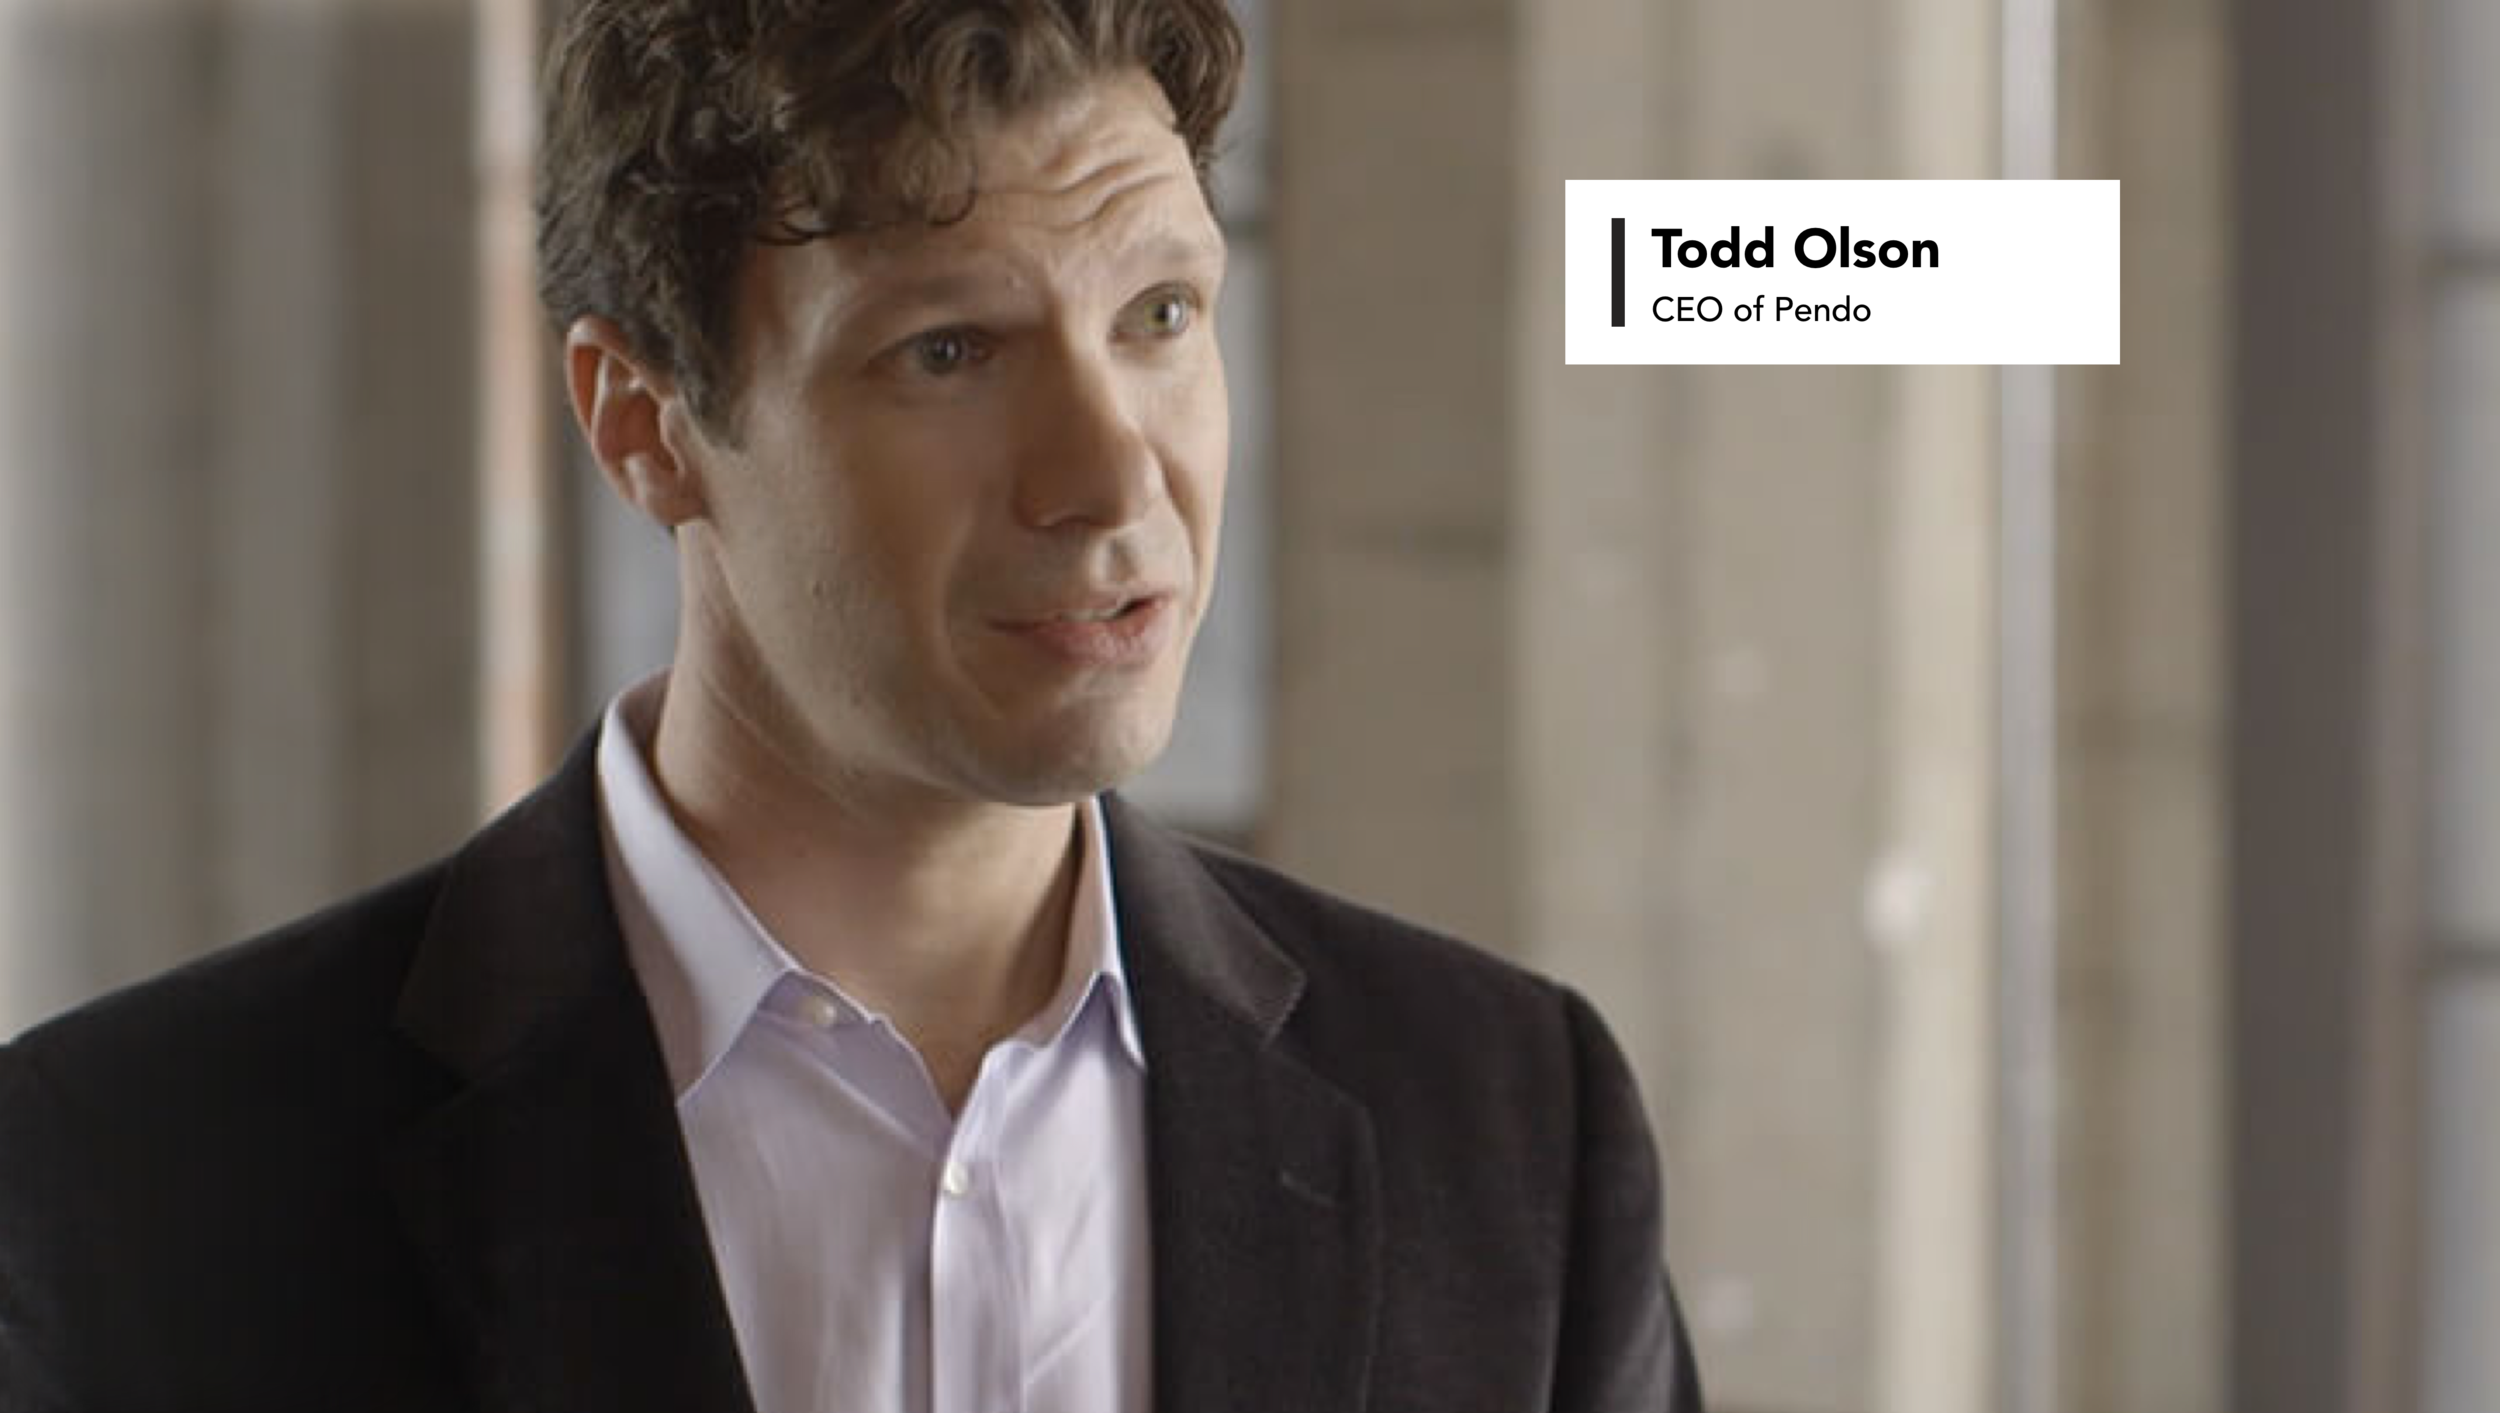 Todd Olson, Business and Pleasure